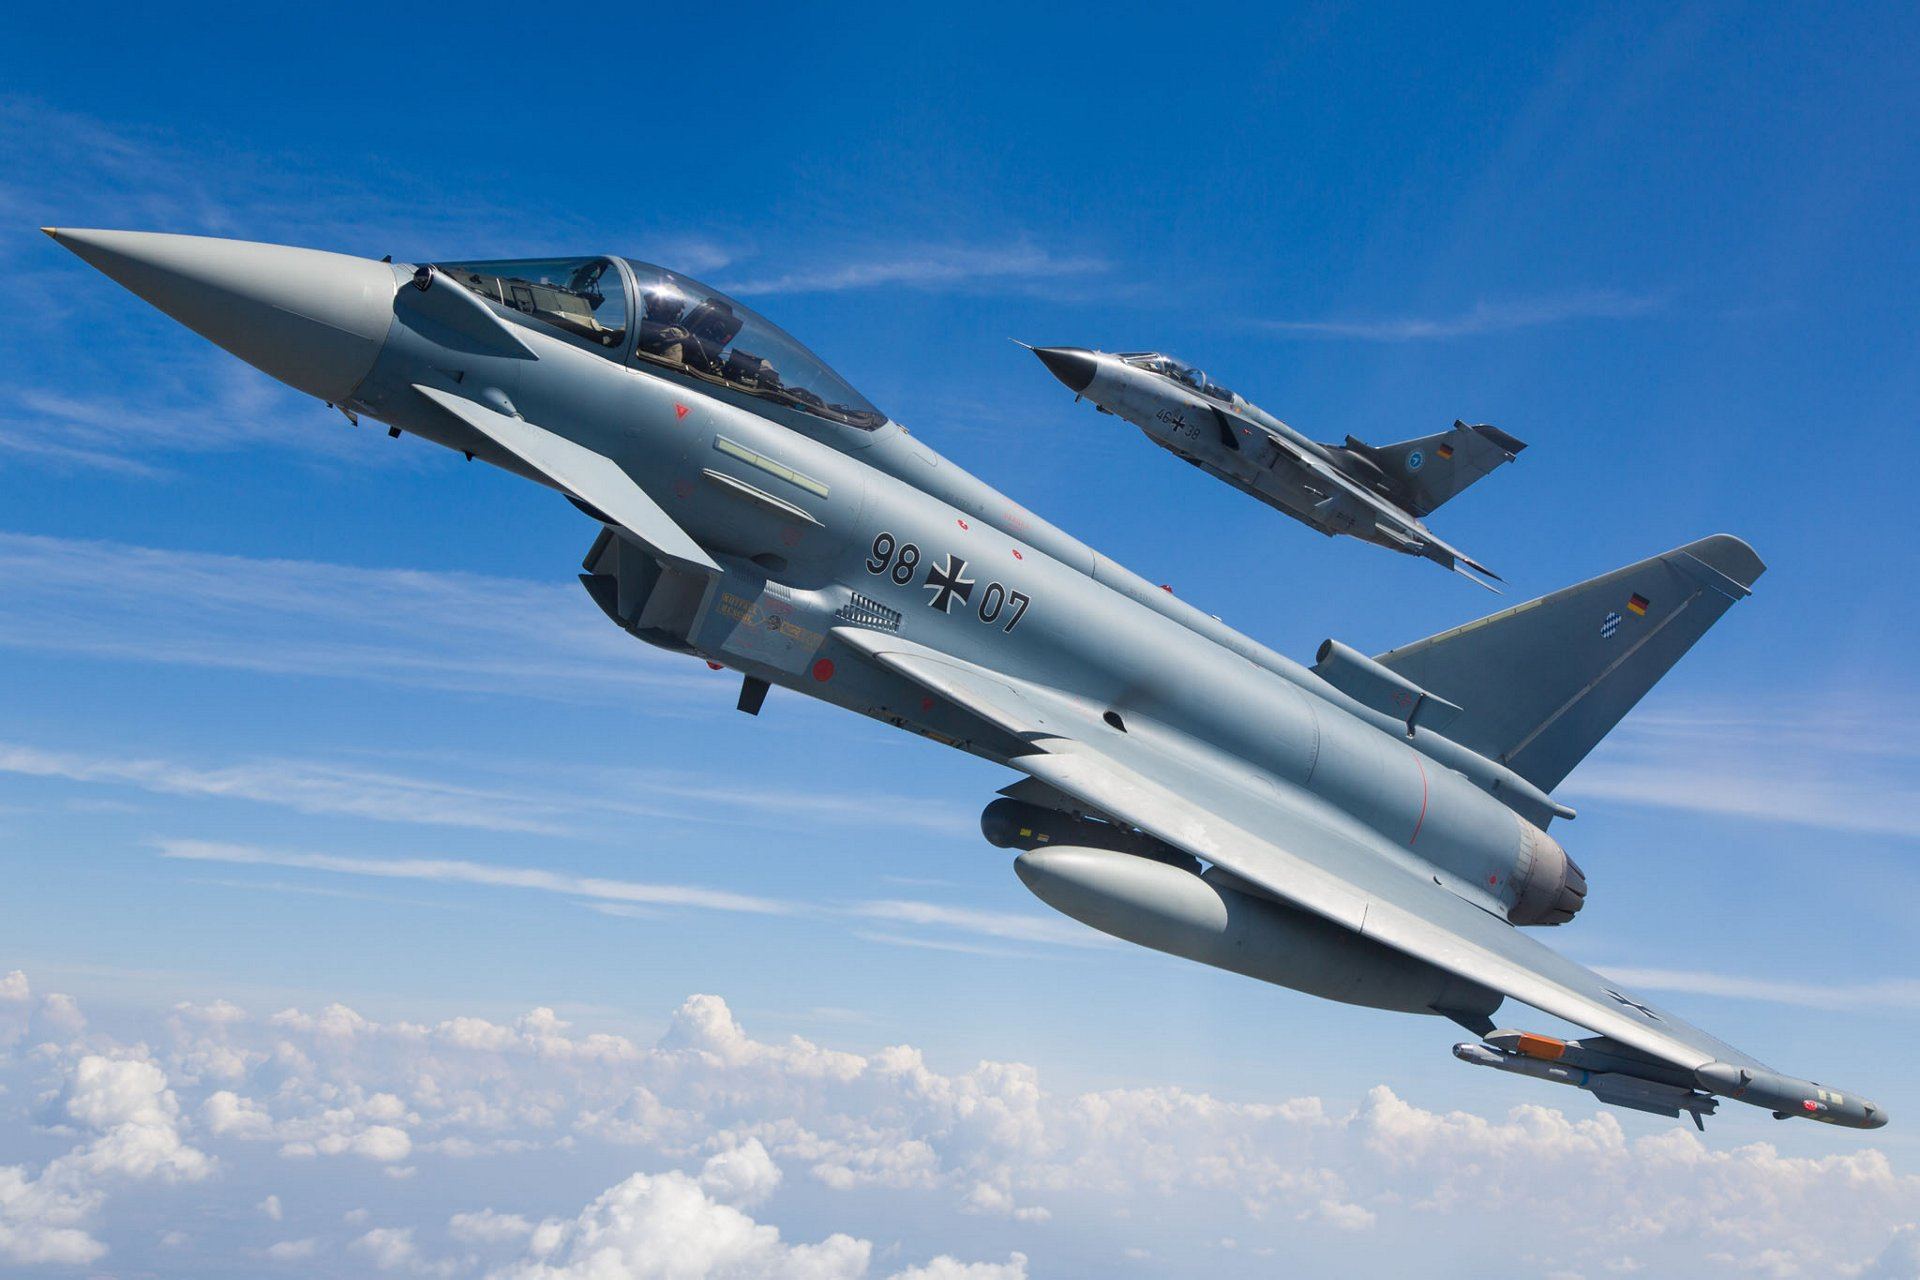 Tornado successor: Team Eurofighter presents offer to Germany